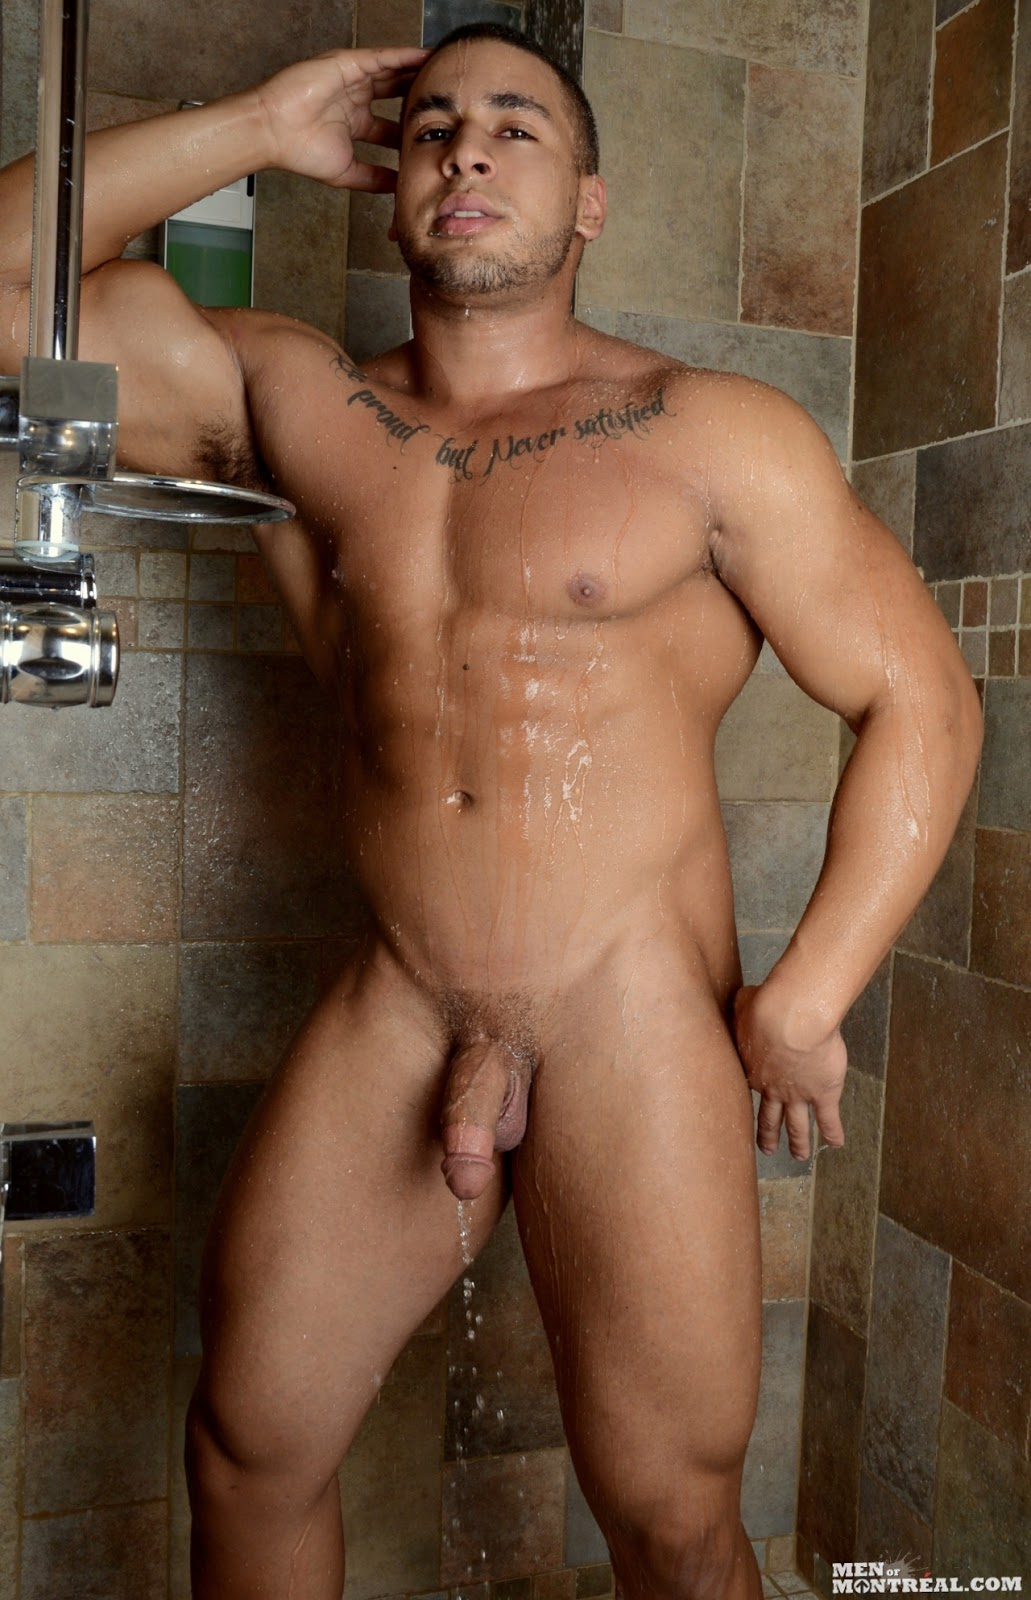 Hairy men in the shower